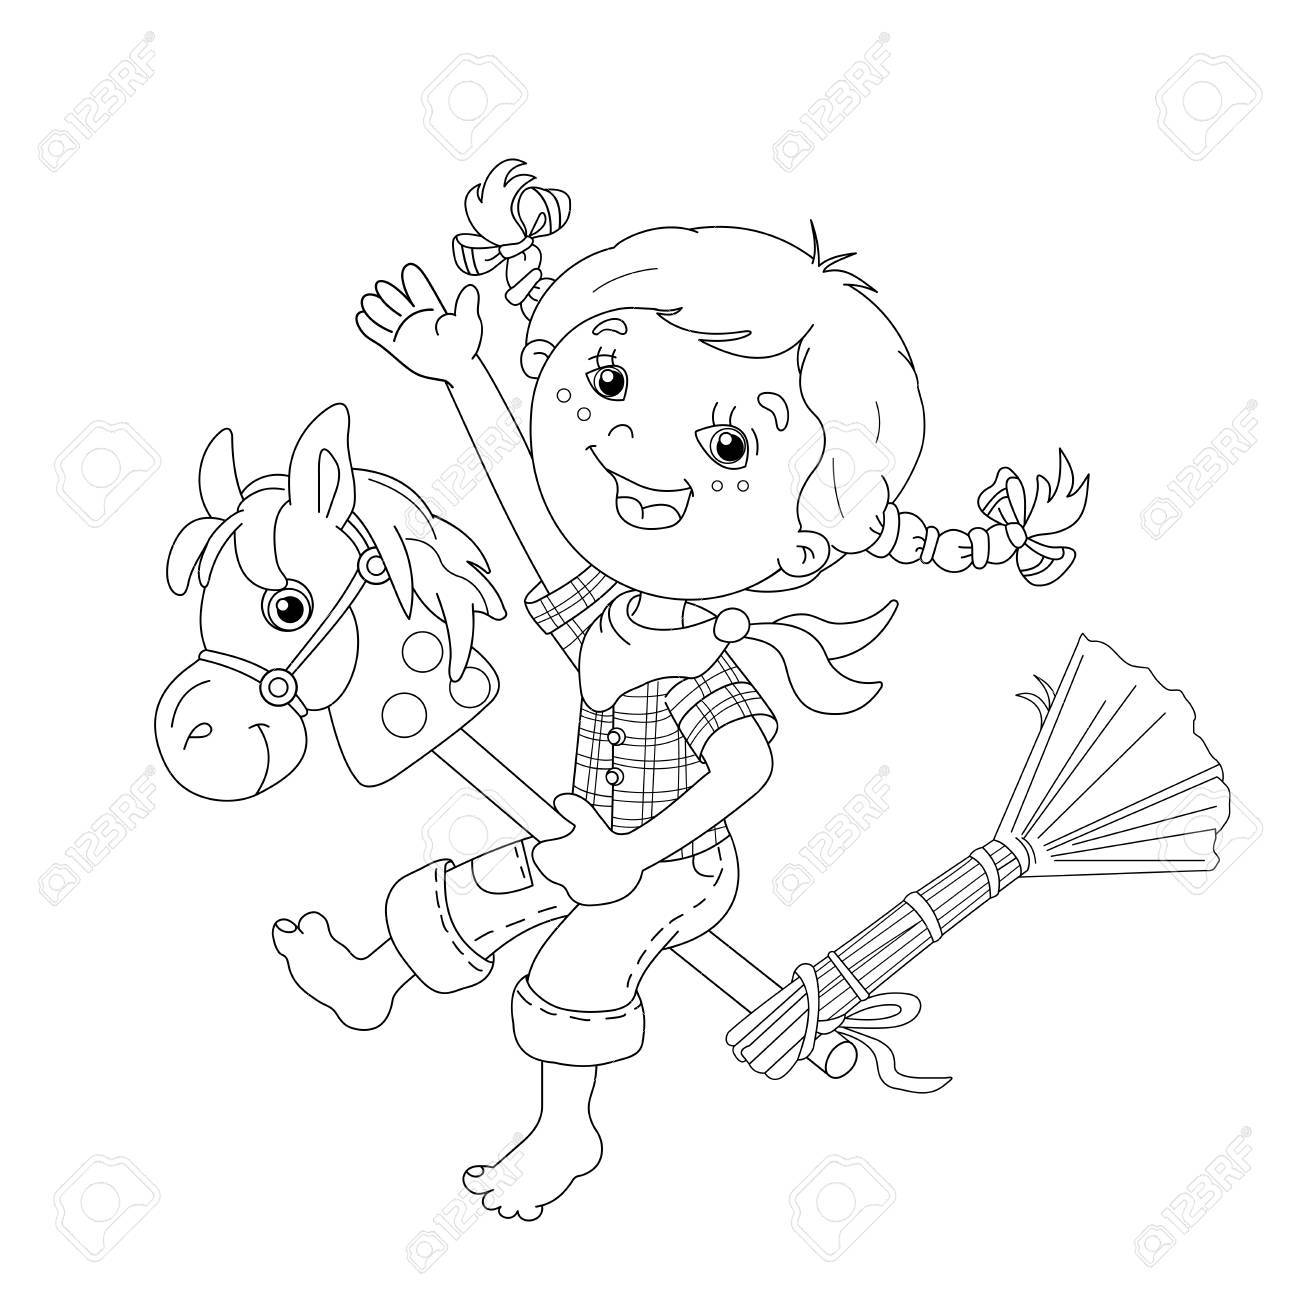 Coloring Page Outline Of Cartoon Girl Playing Cowboy With Toy Horse Book For Kids